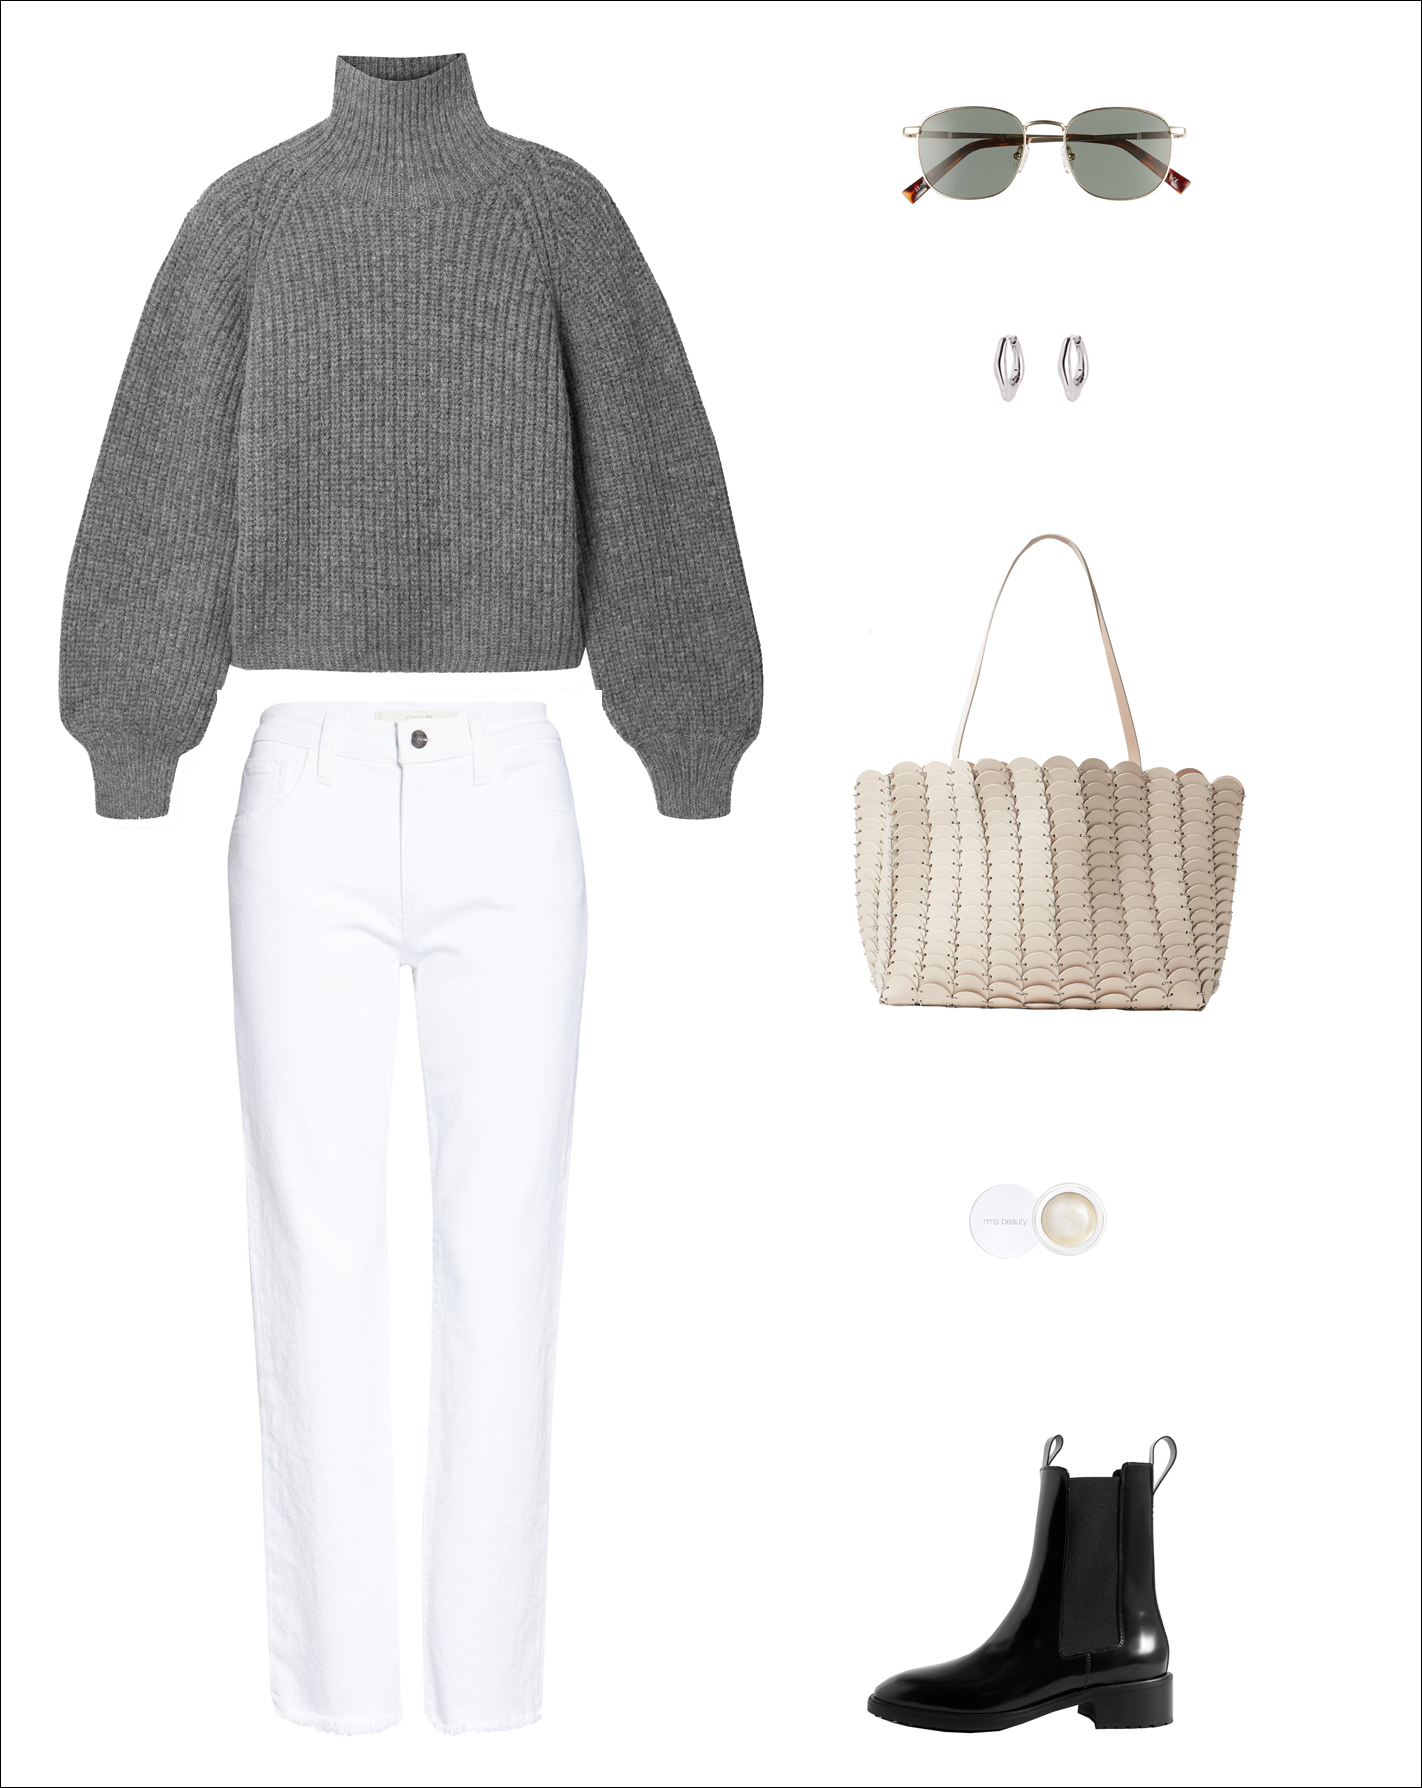 White Jeans Look — Winter to Spring Transitional Outfit — Chunky Gray Turtleneck Sweater, Round Sunglasses, Paco Rabanne Tote Bag, RMS Lunimizer, White Denim, and Black Chelsea Boots